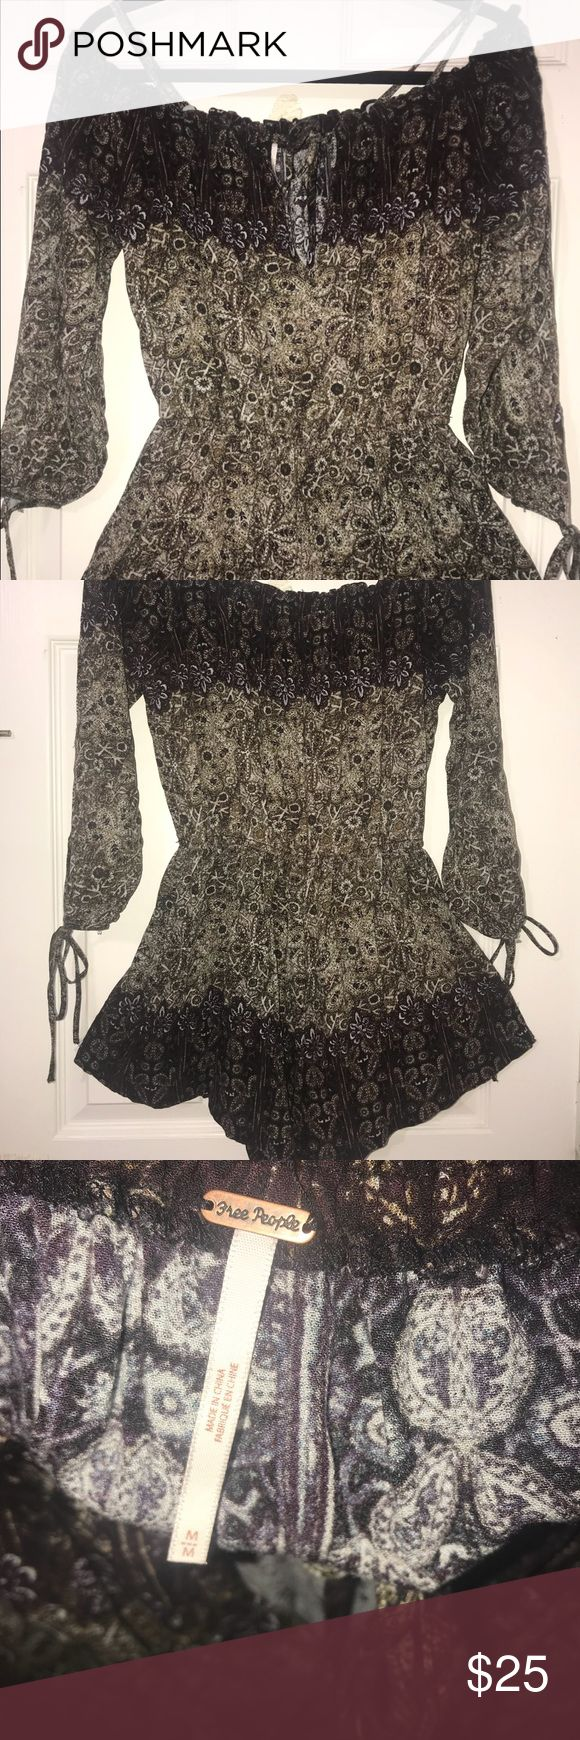 Free People Junior Romper size Medium Used once. In great condition. It is a pull over style with an elastic waste and tie sleeves. Can we worn off the shoulder or with straps. Shorts have lining. Comes from a Pet Free / Smoke Free Home. Free People Dresses Mini